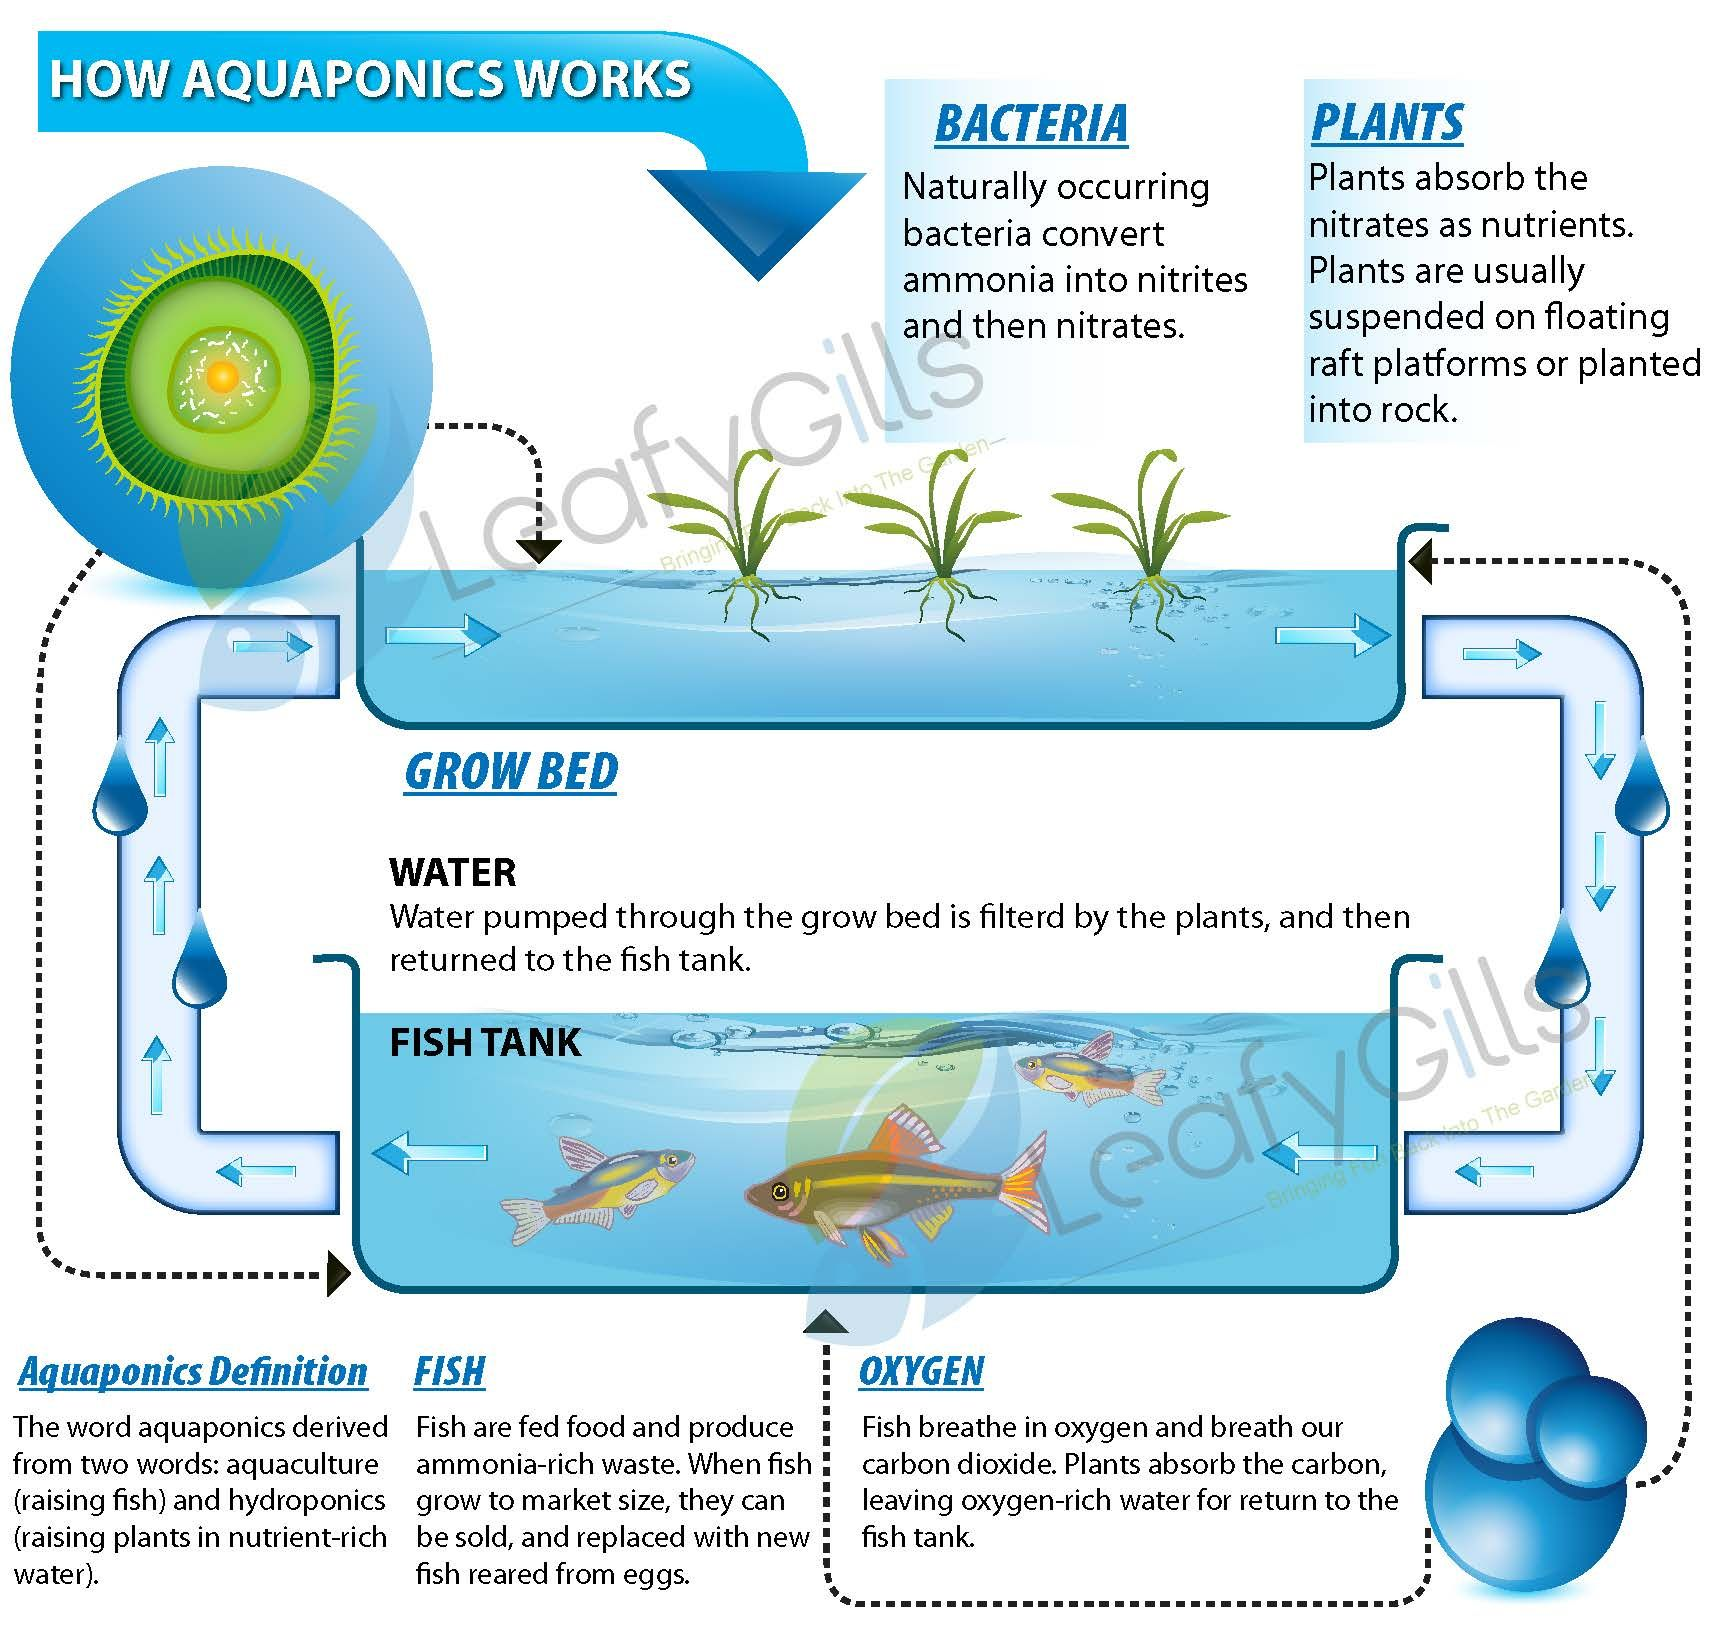 Aquaponics system the benefits of aquaponics include for Fish used in aquaponics